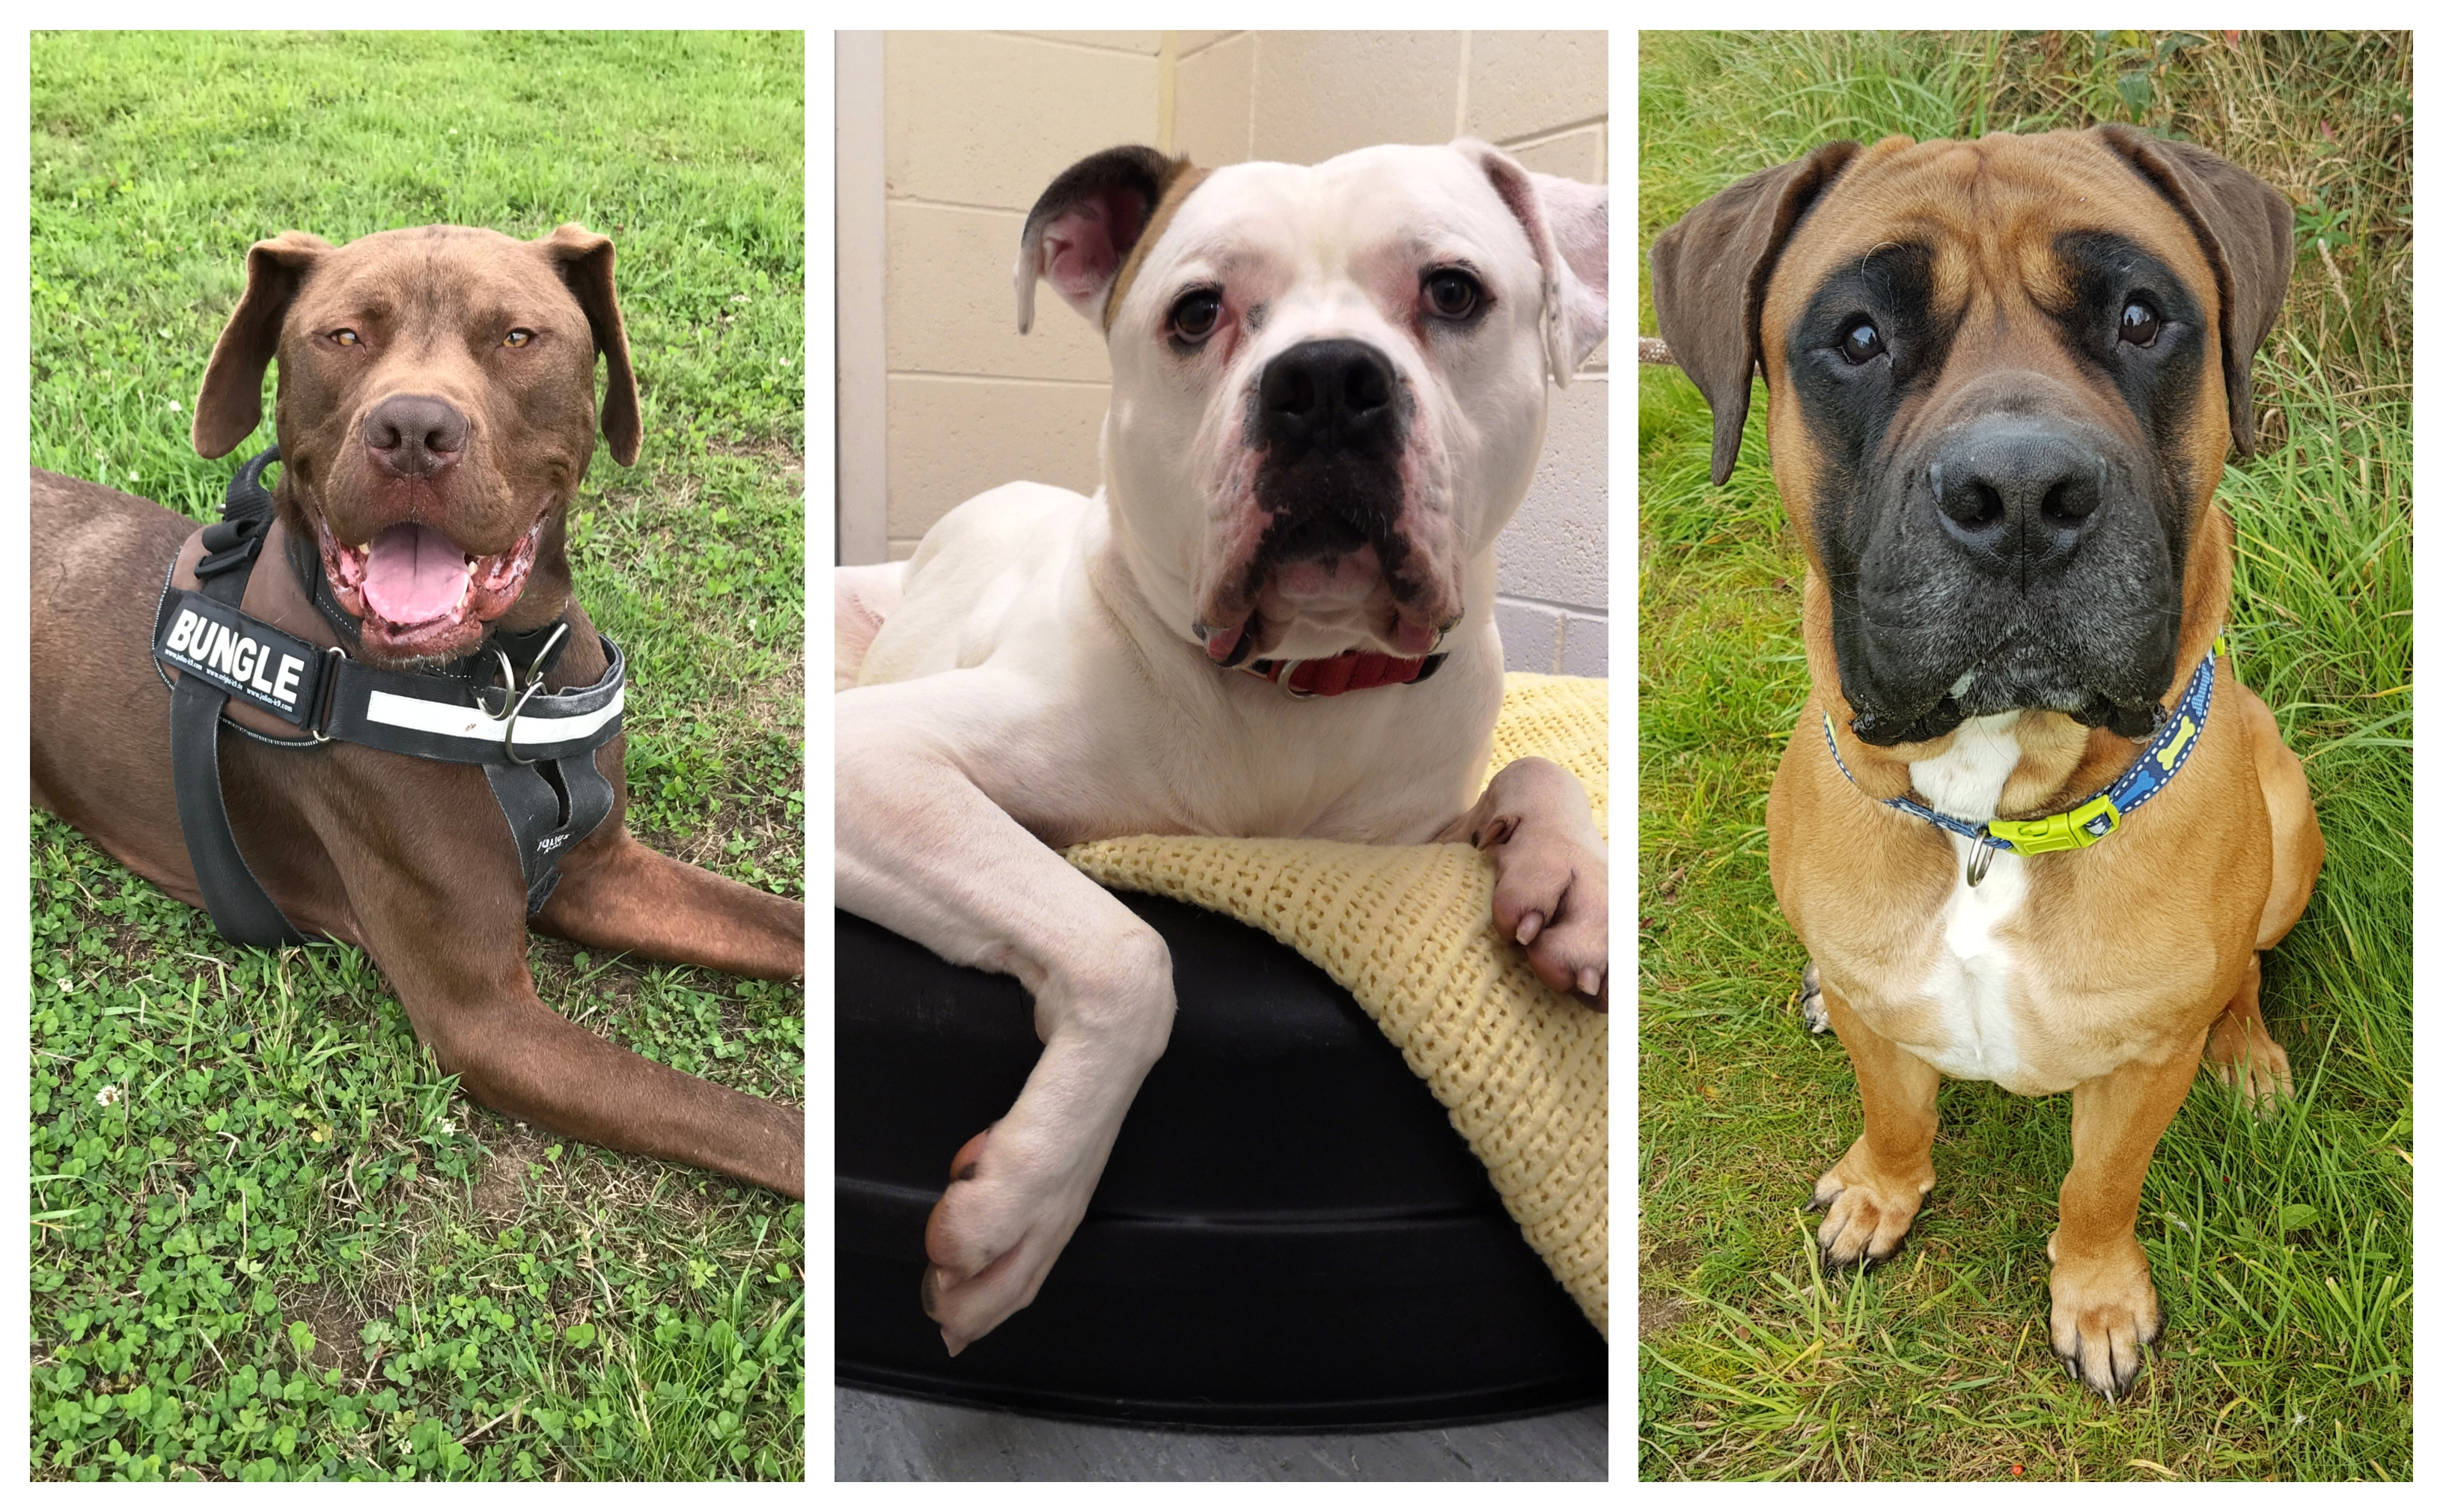 Bungle, Wallace and Magnus need homes this festive period.